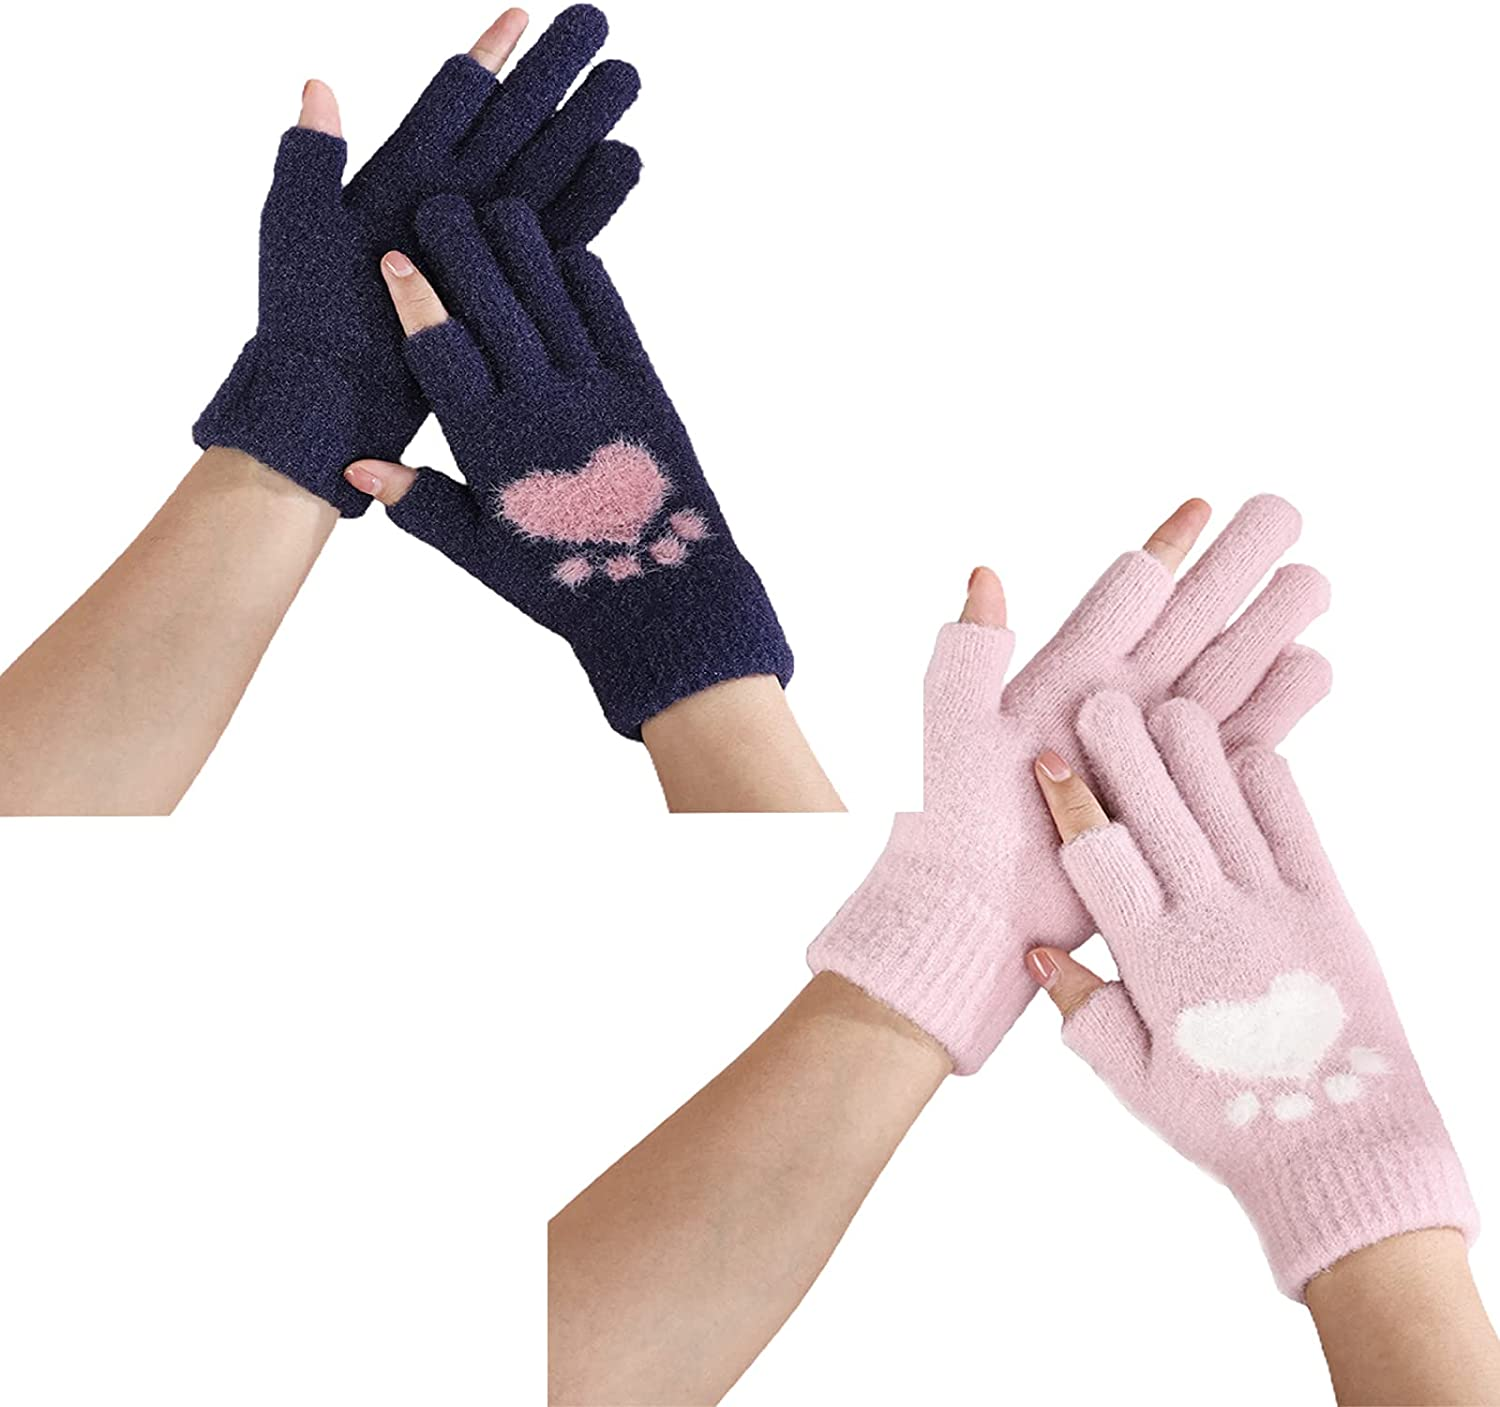 SLDHFE A Pair of Winter Warm Gloves,18x11cm Half Finger Gloves Winter Fingerless Gloves,Knitted Fingerless Mittens Warm Stretchy Gloves for Men and Women